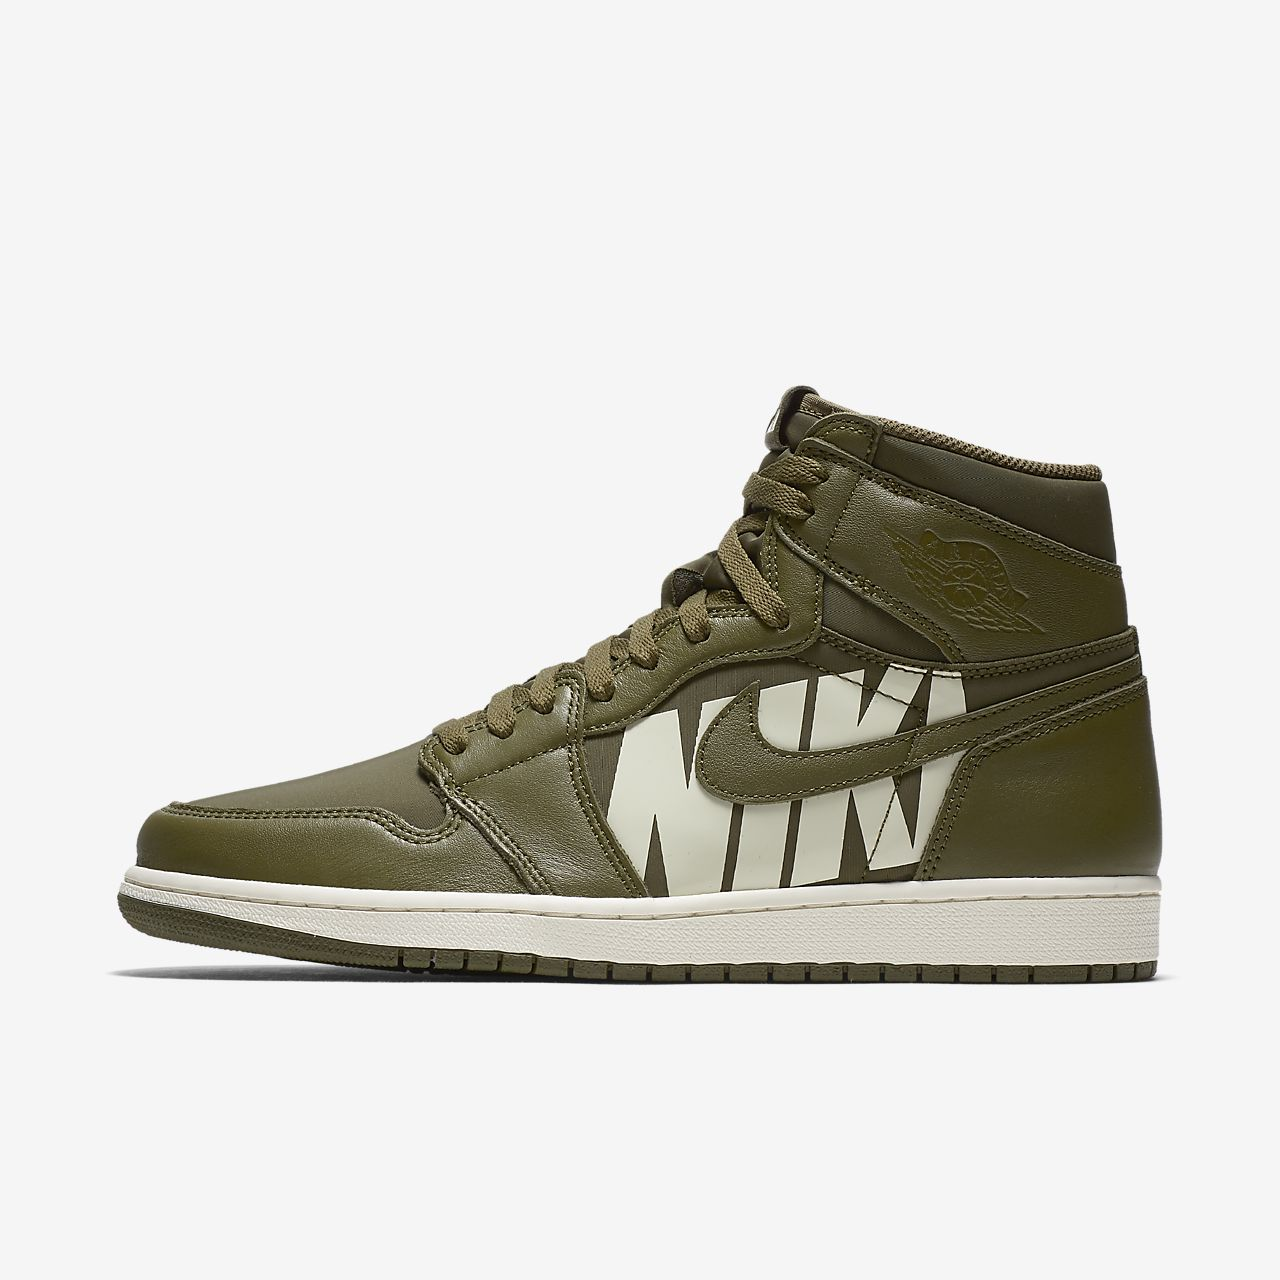 b1298472ff6 Air Jordan 1 Retro High OG Shoe. Nike.com AU